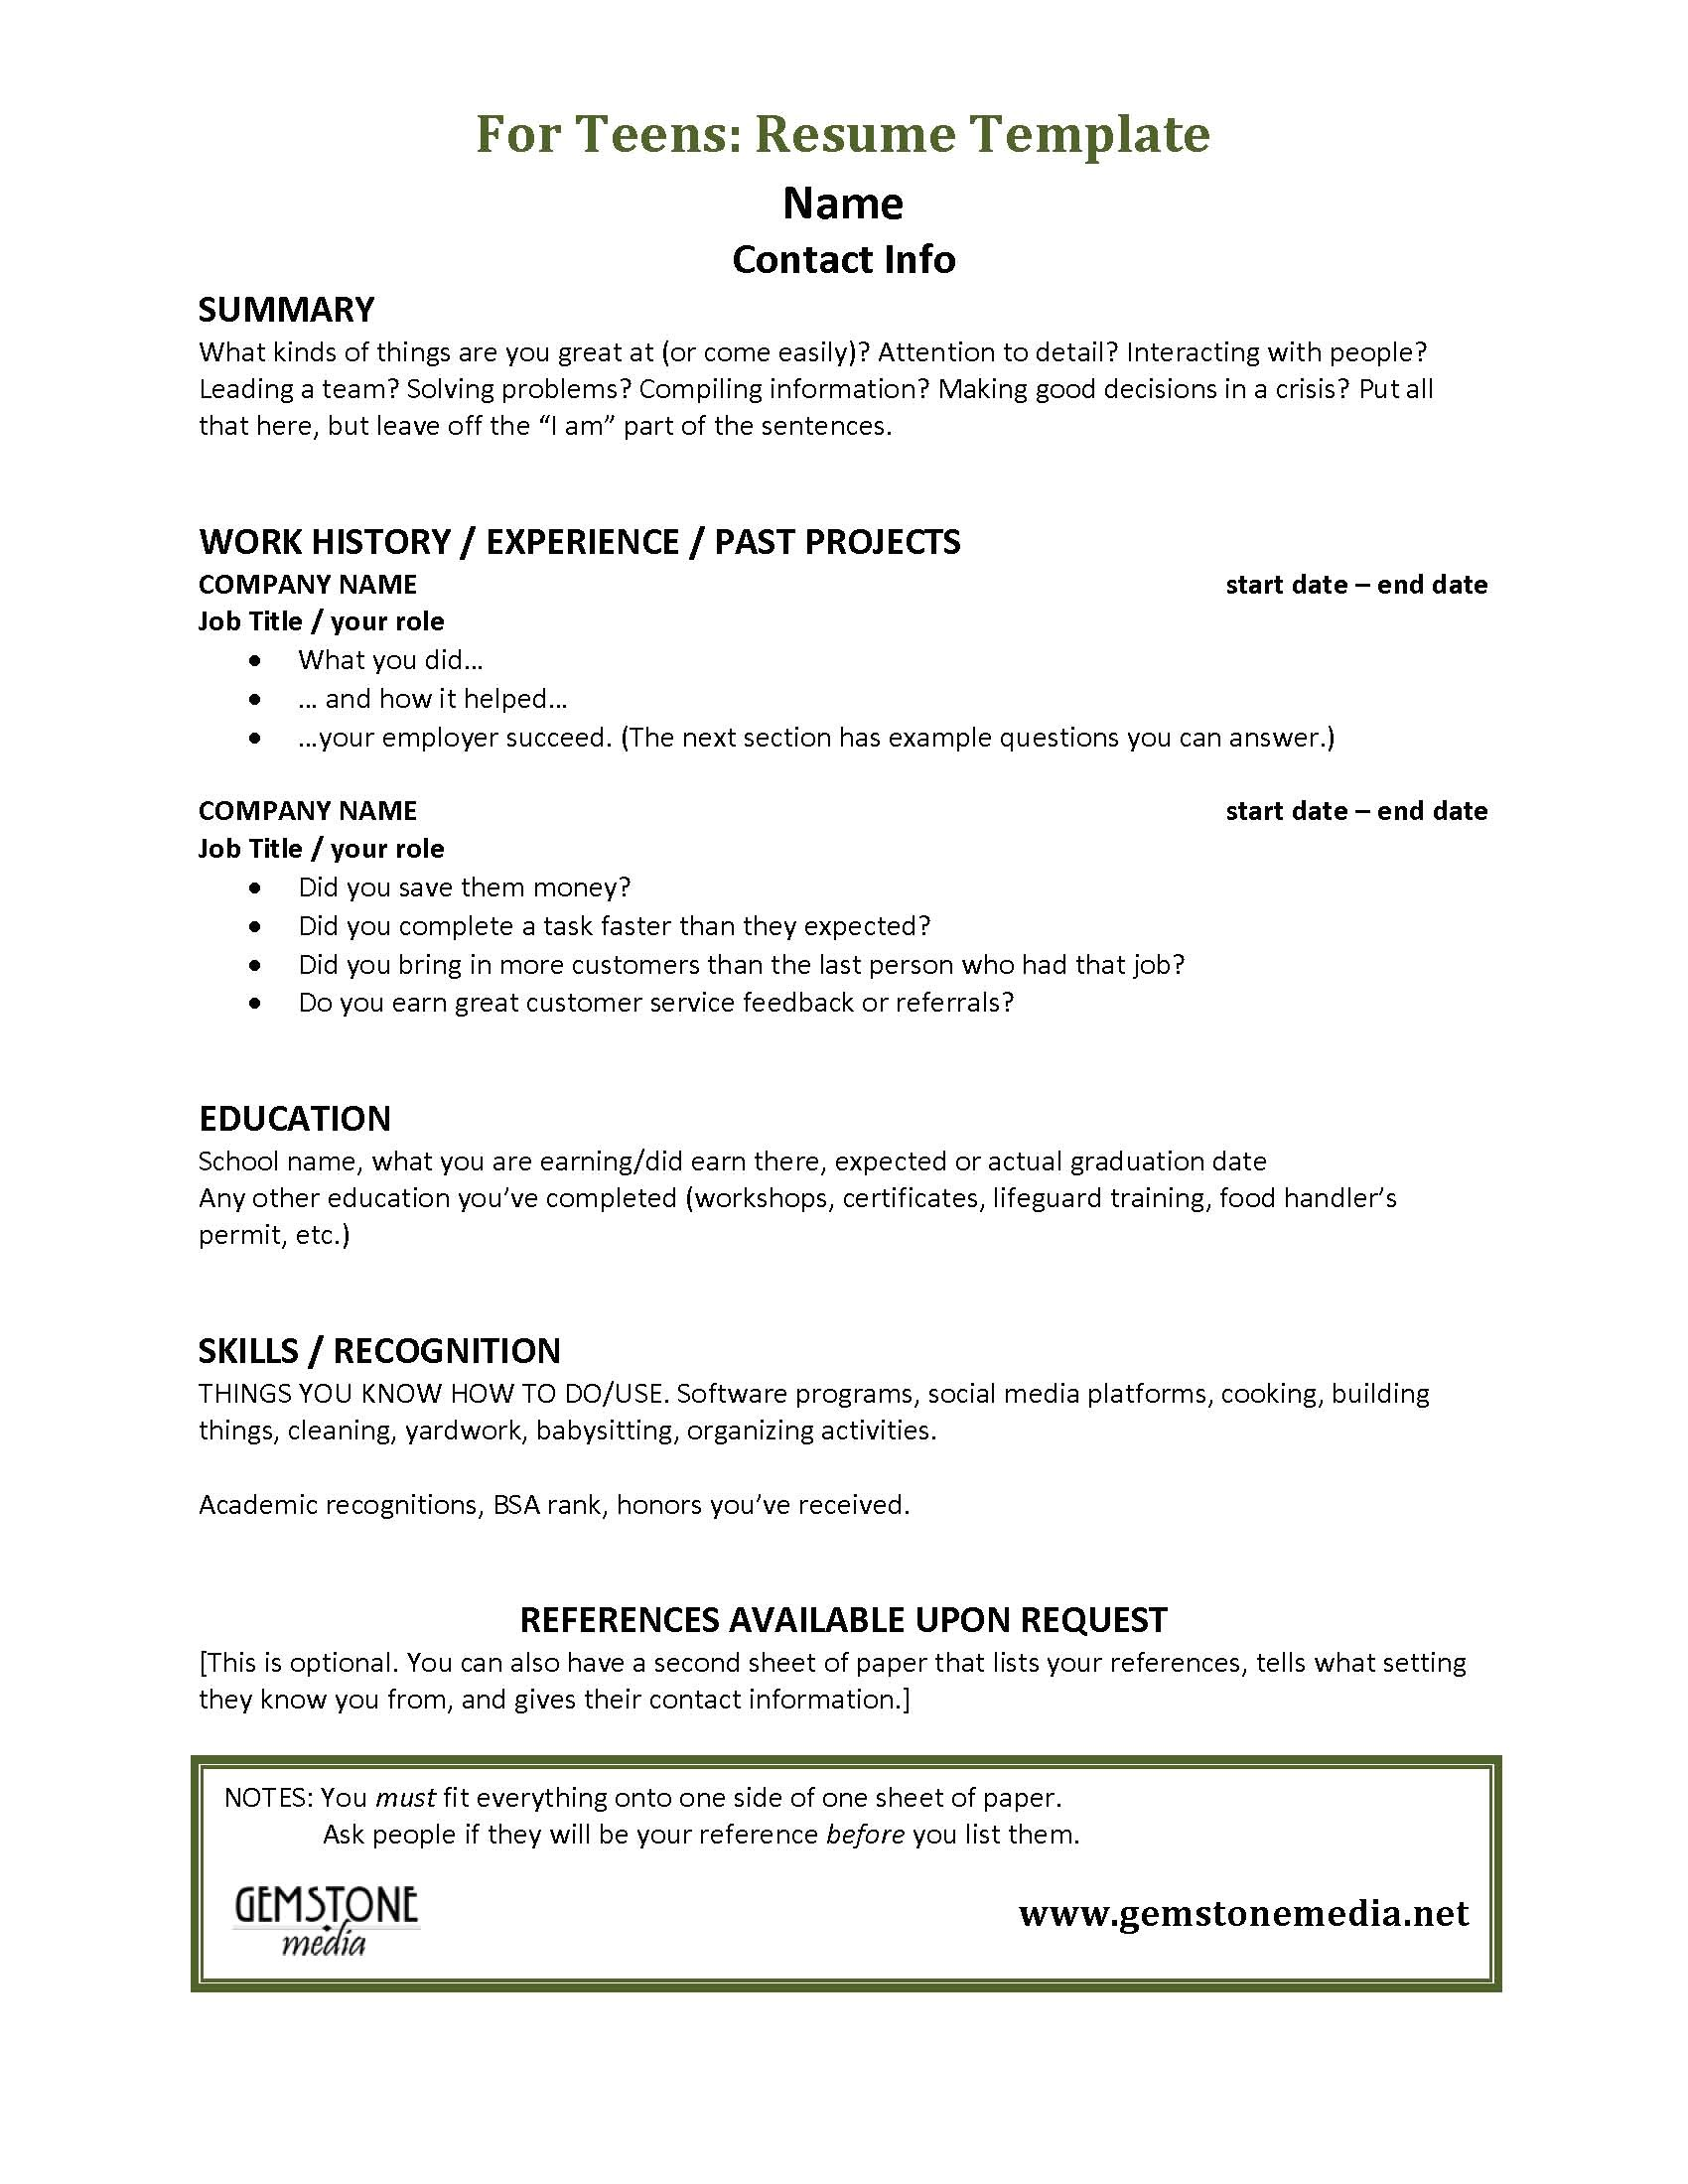 Resume Template for A Teenager Teen Job Hunting Helps Gemstone Media